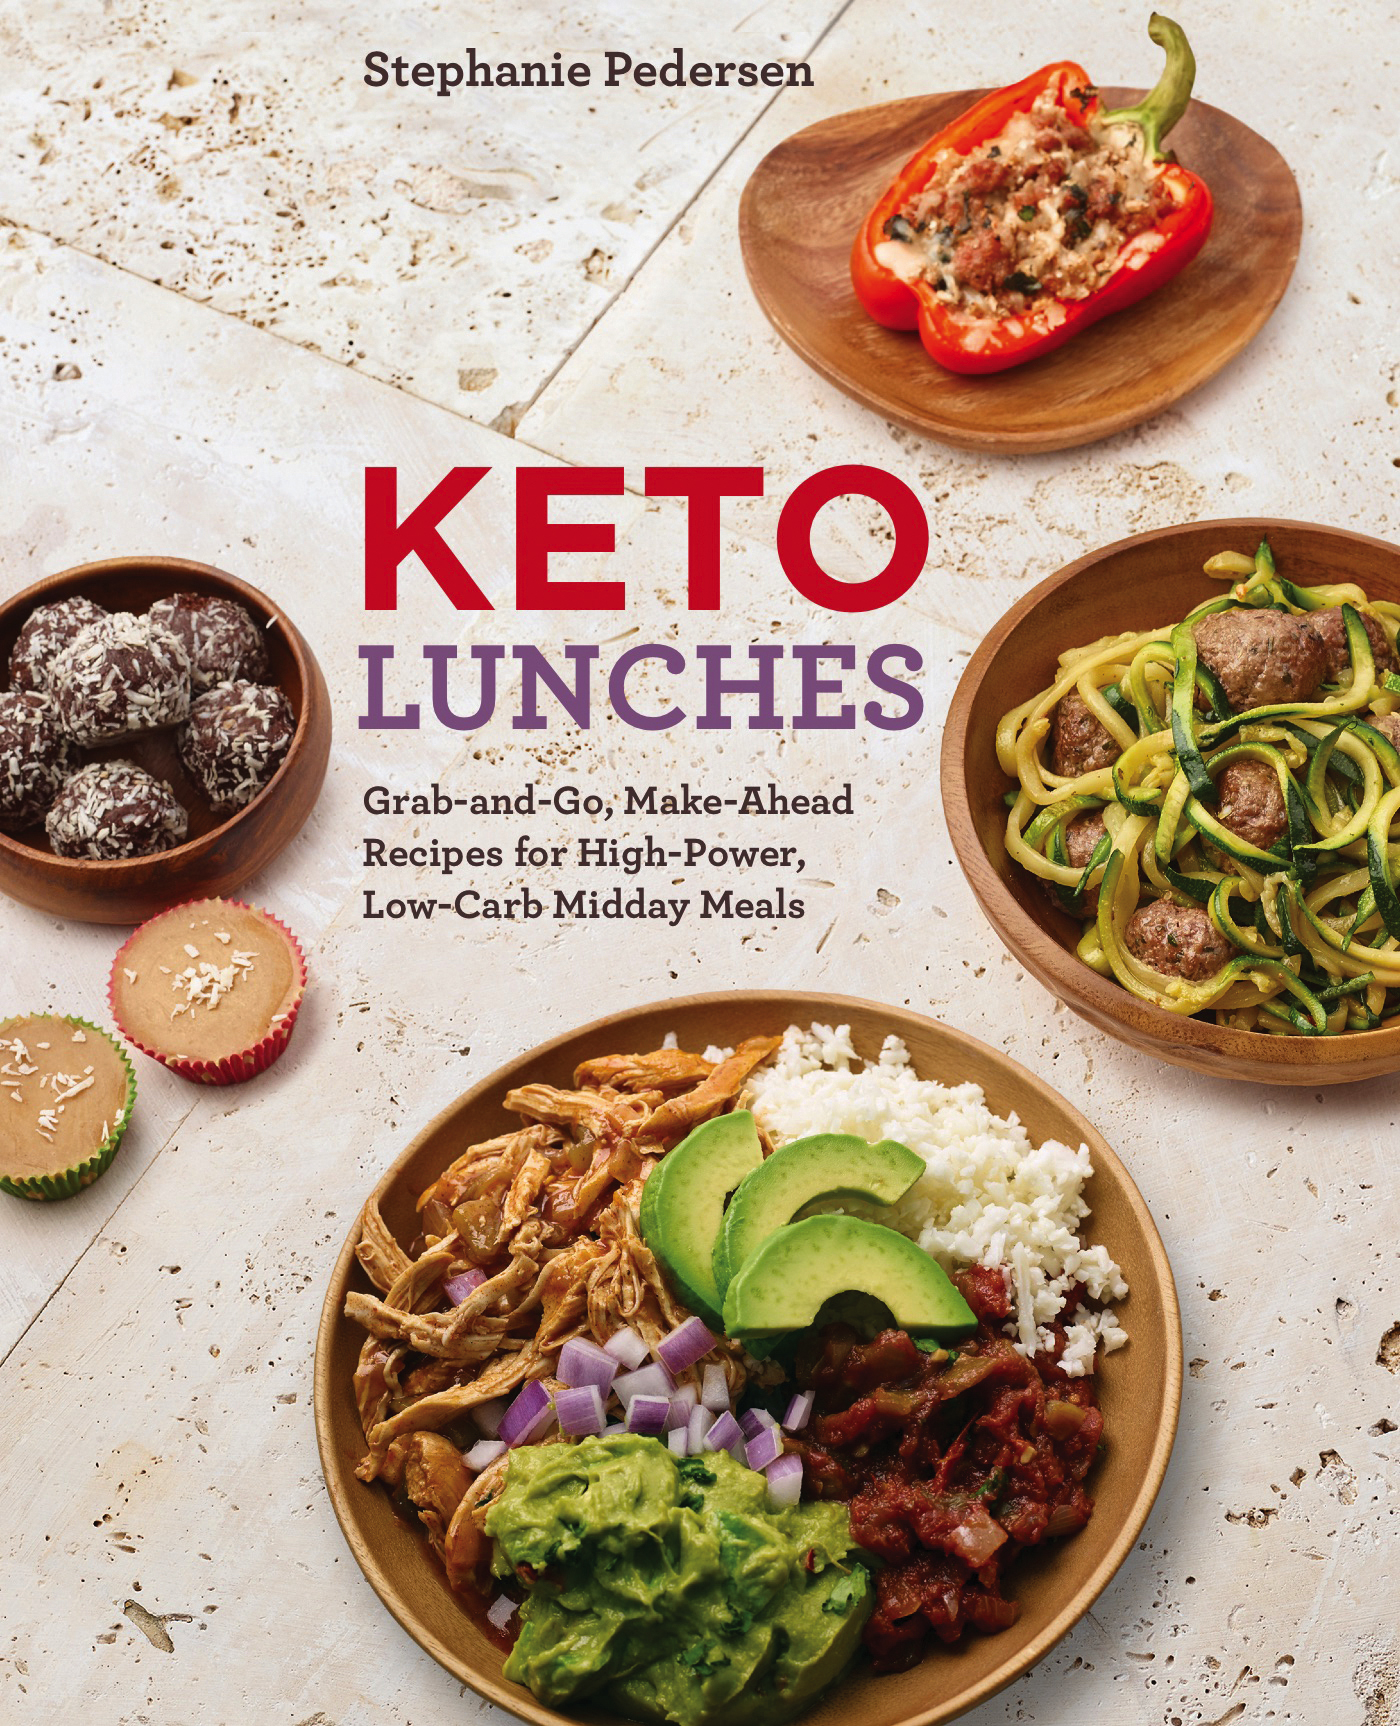 Keto Lunches Grab-and-Go, Make-Ahead Recipes for High-Power, Low-Carb Midday Meals